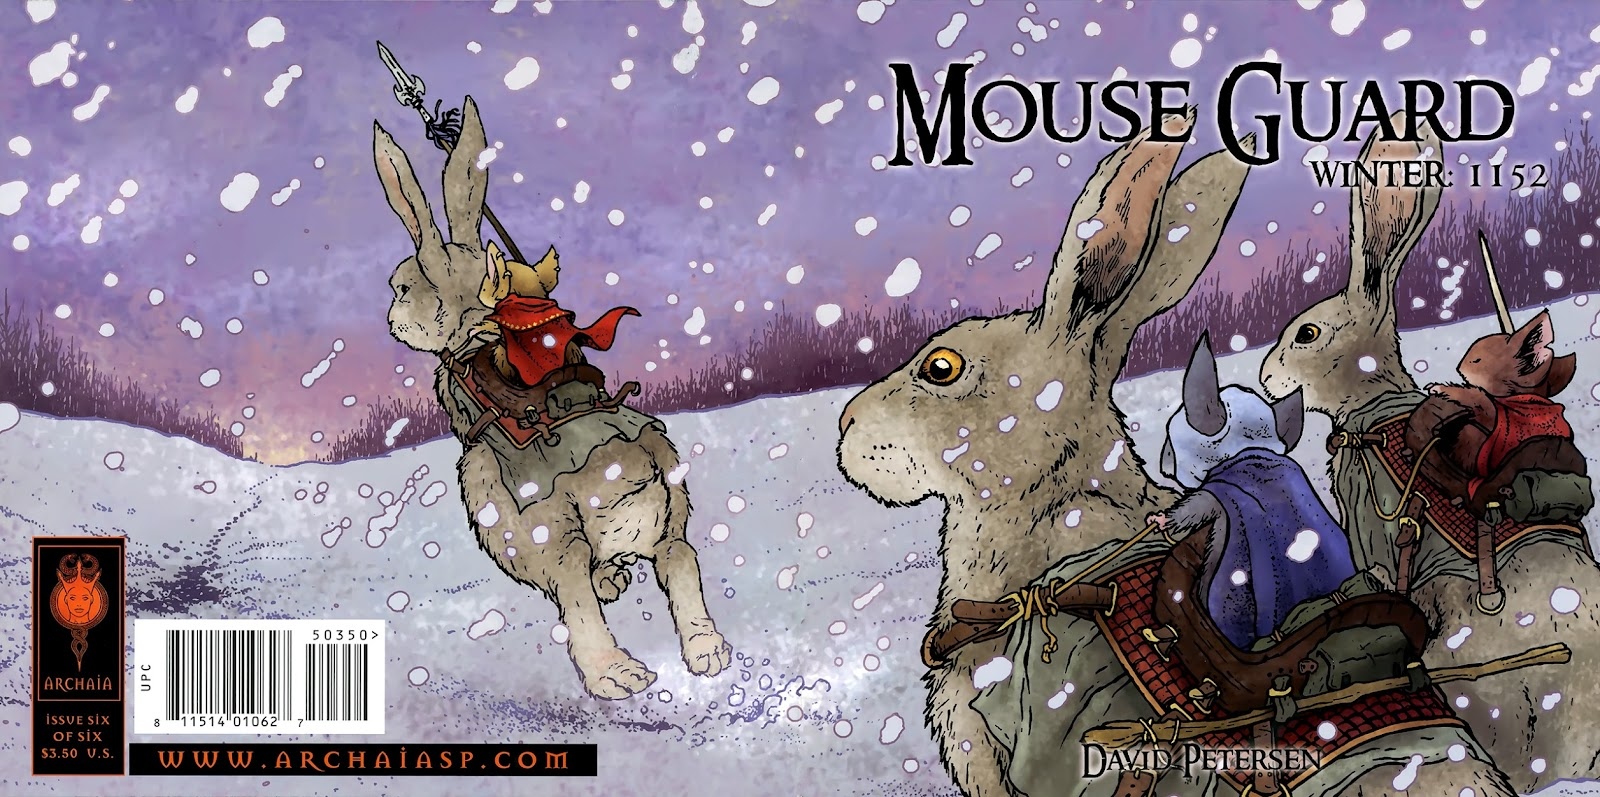 Mouse Guard: Winter 1152 issue 6 - Page 1